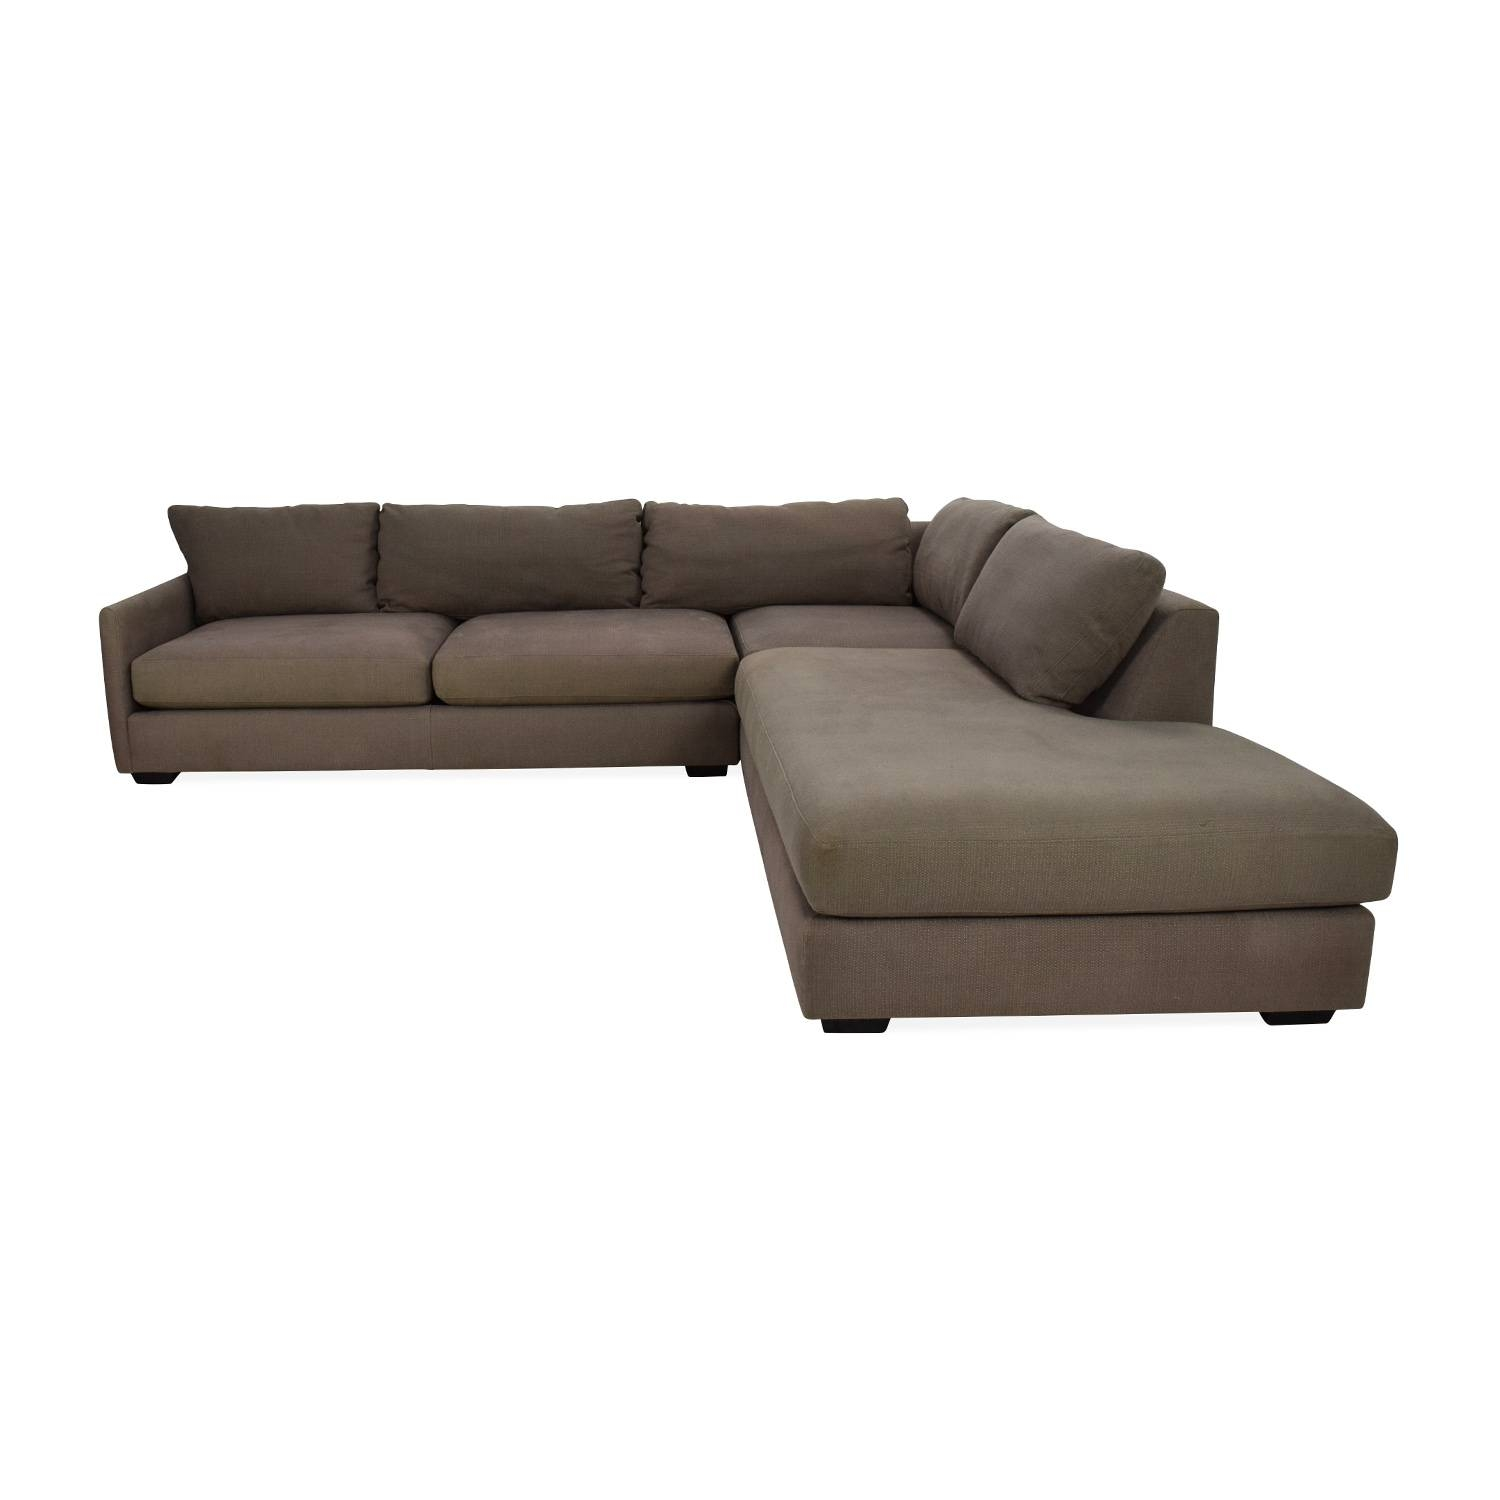 56% Off   Brown Corduroy L Shaped Sectional Couch / Sofas Regarding Crate And Barrel Sofa Sleepers (Photo 15 of 15)